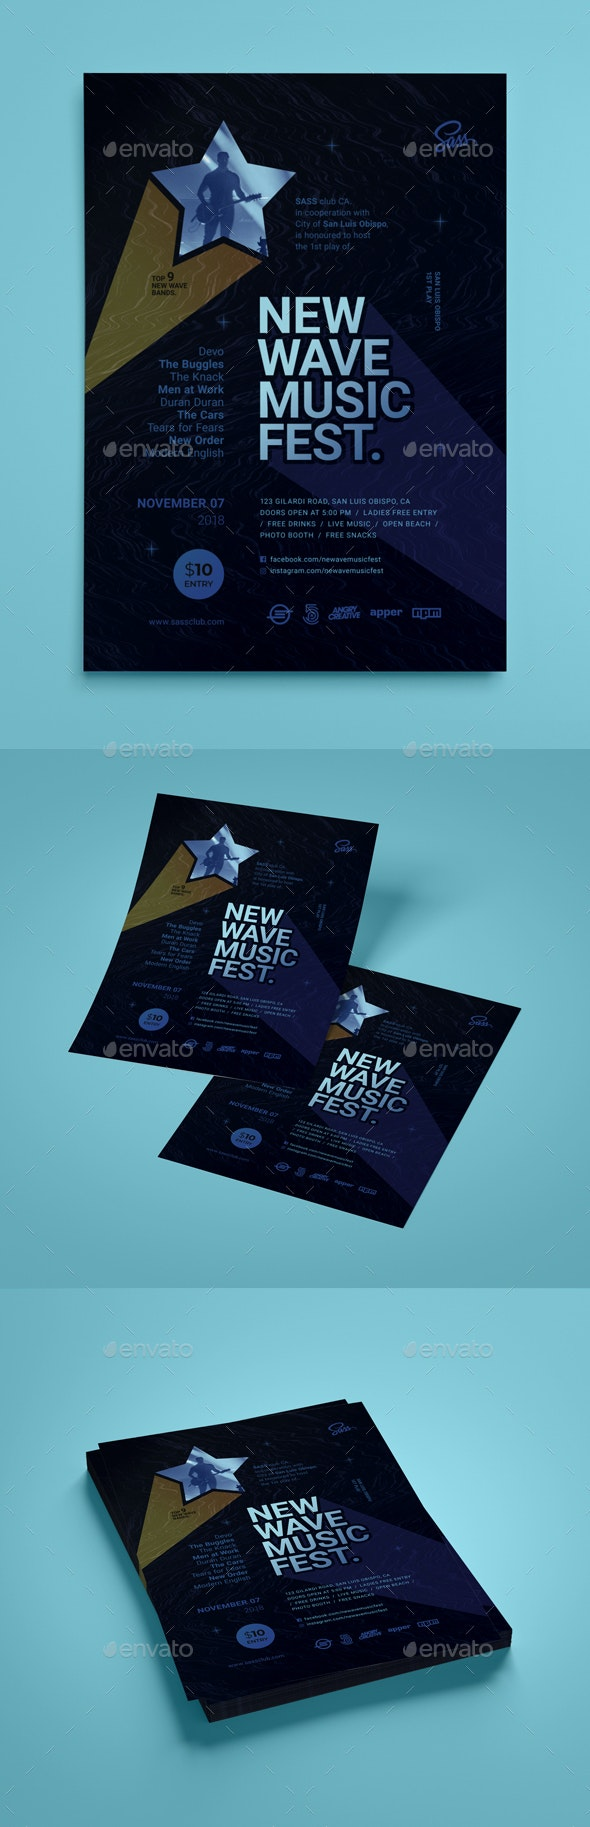 New Wave Music Flyer (Vol.1) - Events Flyers